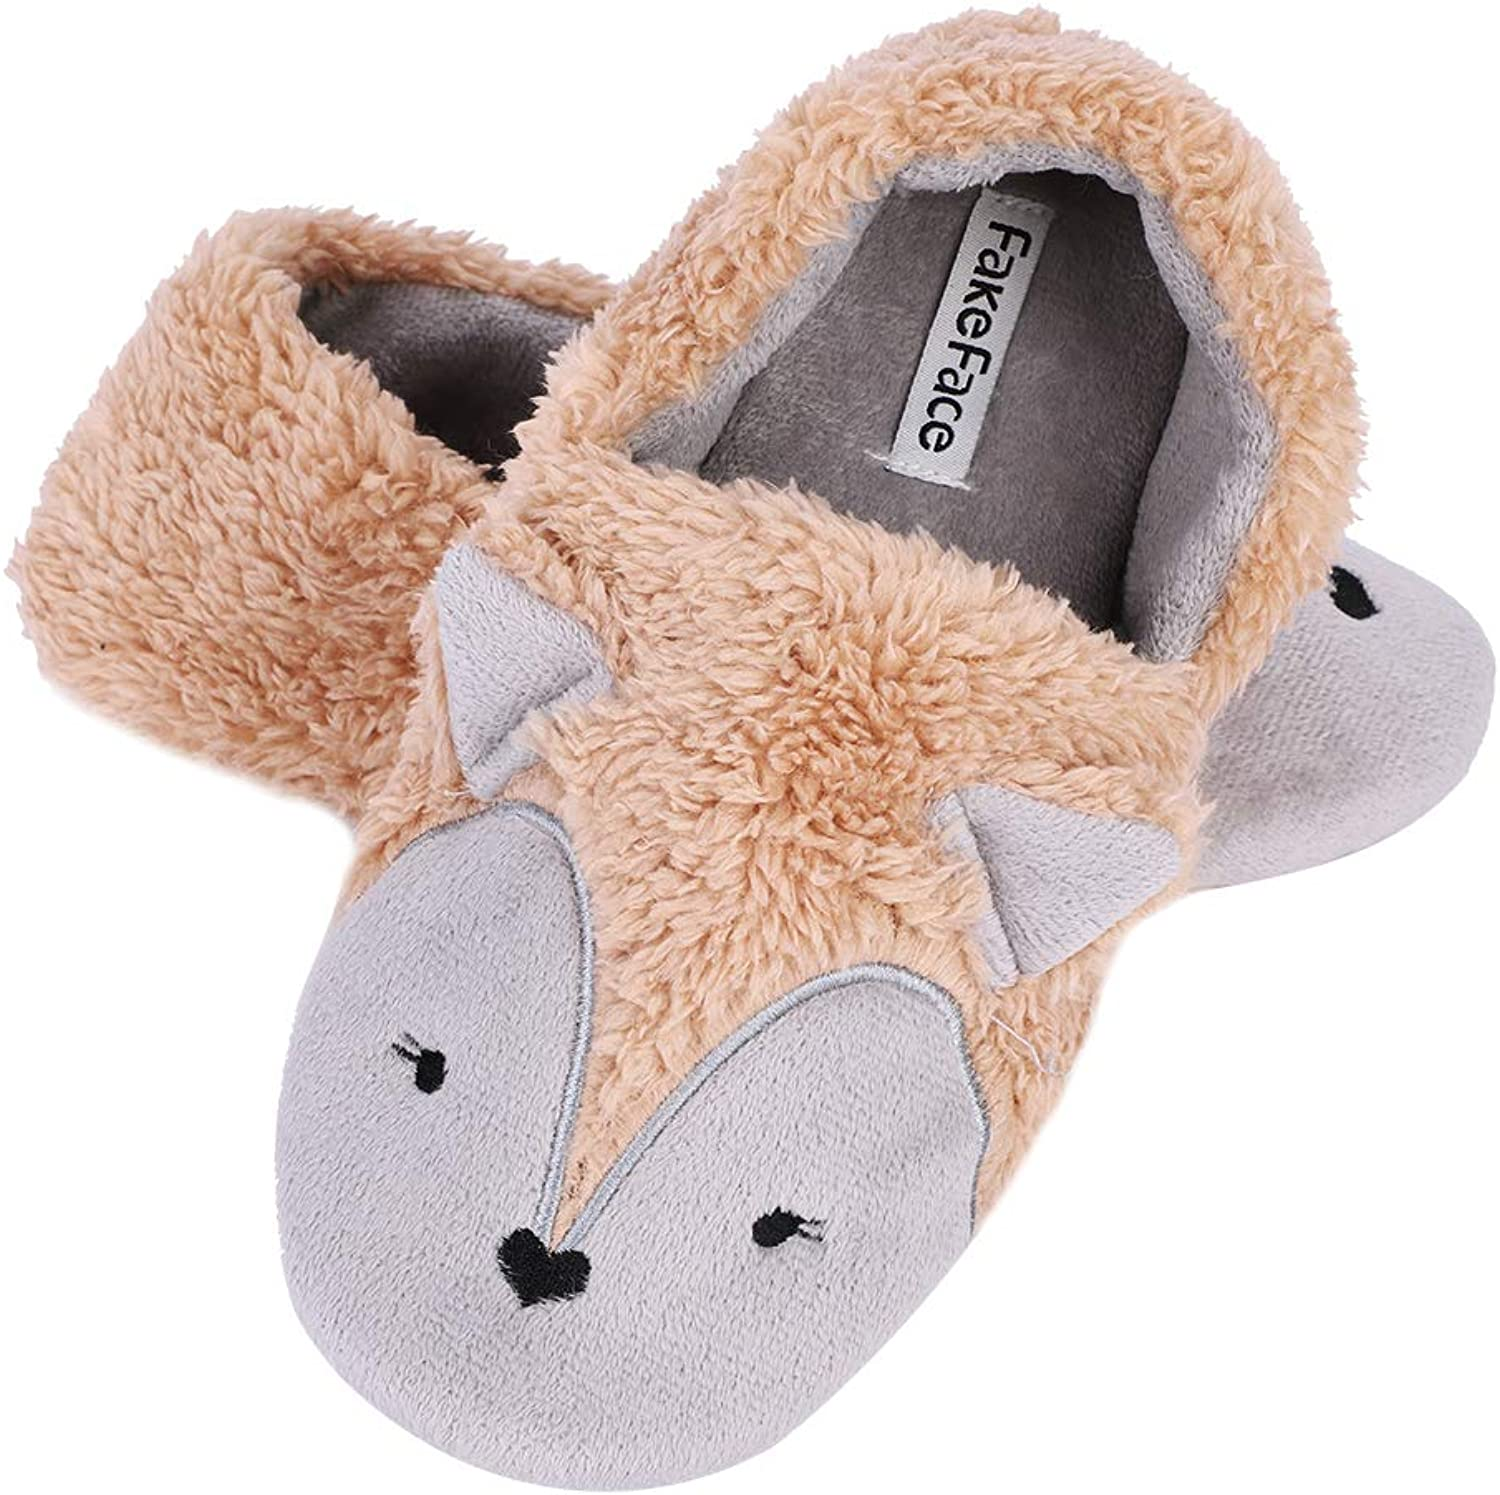 QCHOMEE Stylish Fox Slippers, Women Girls Full Feet Plush Warm Slippers Winter Thermal Fleece House Indoor Slippers Fuzzy Clog Mule Skid-Proof Sole Footwear Home shoes with Warm Lining